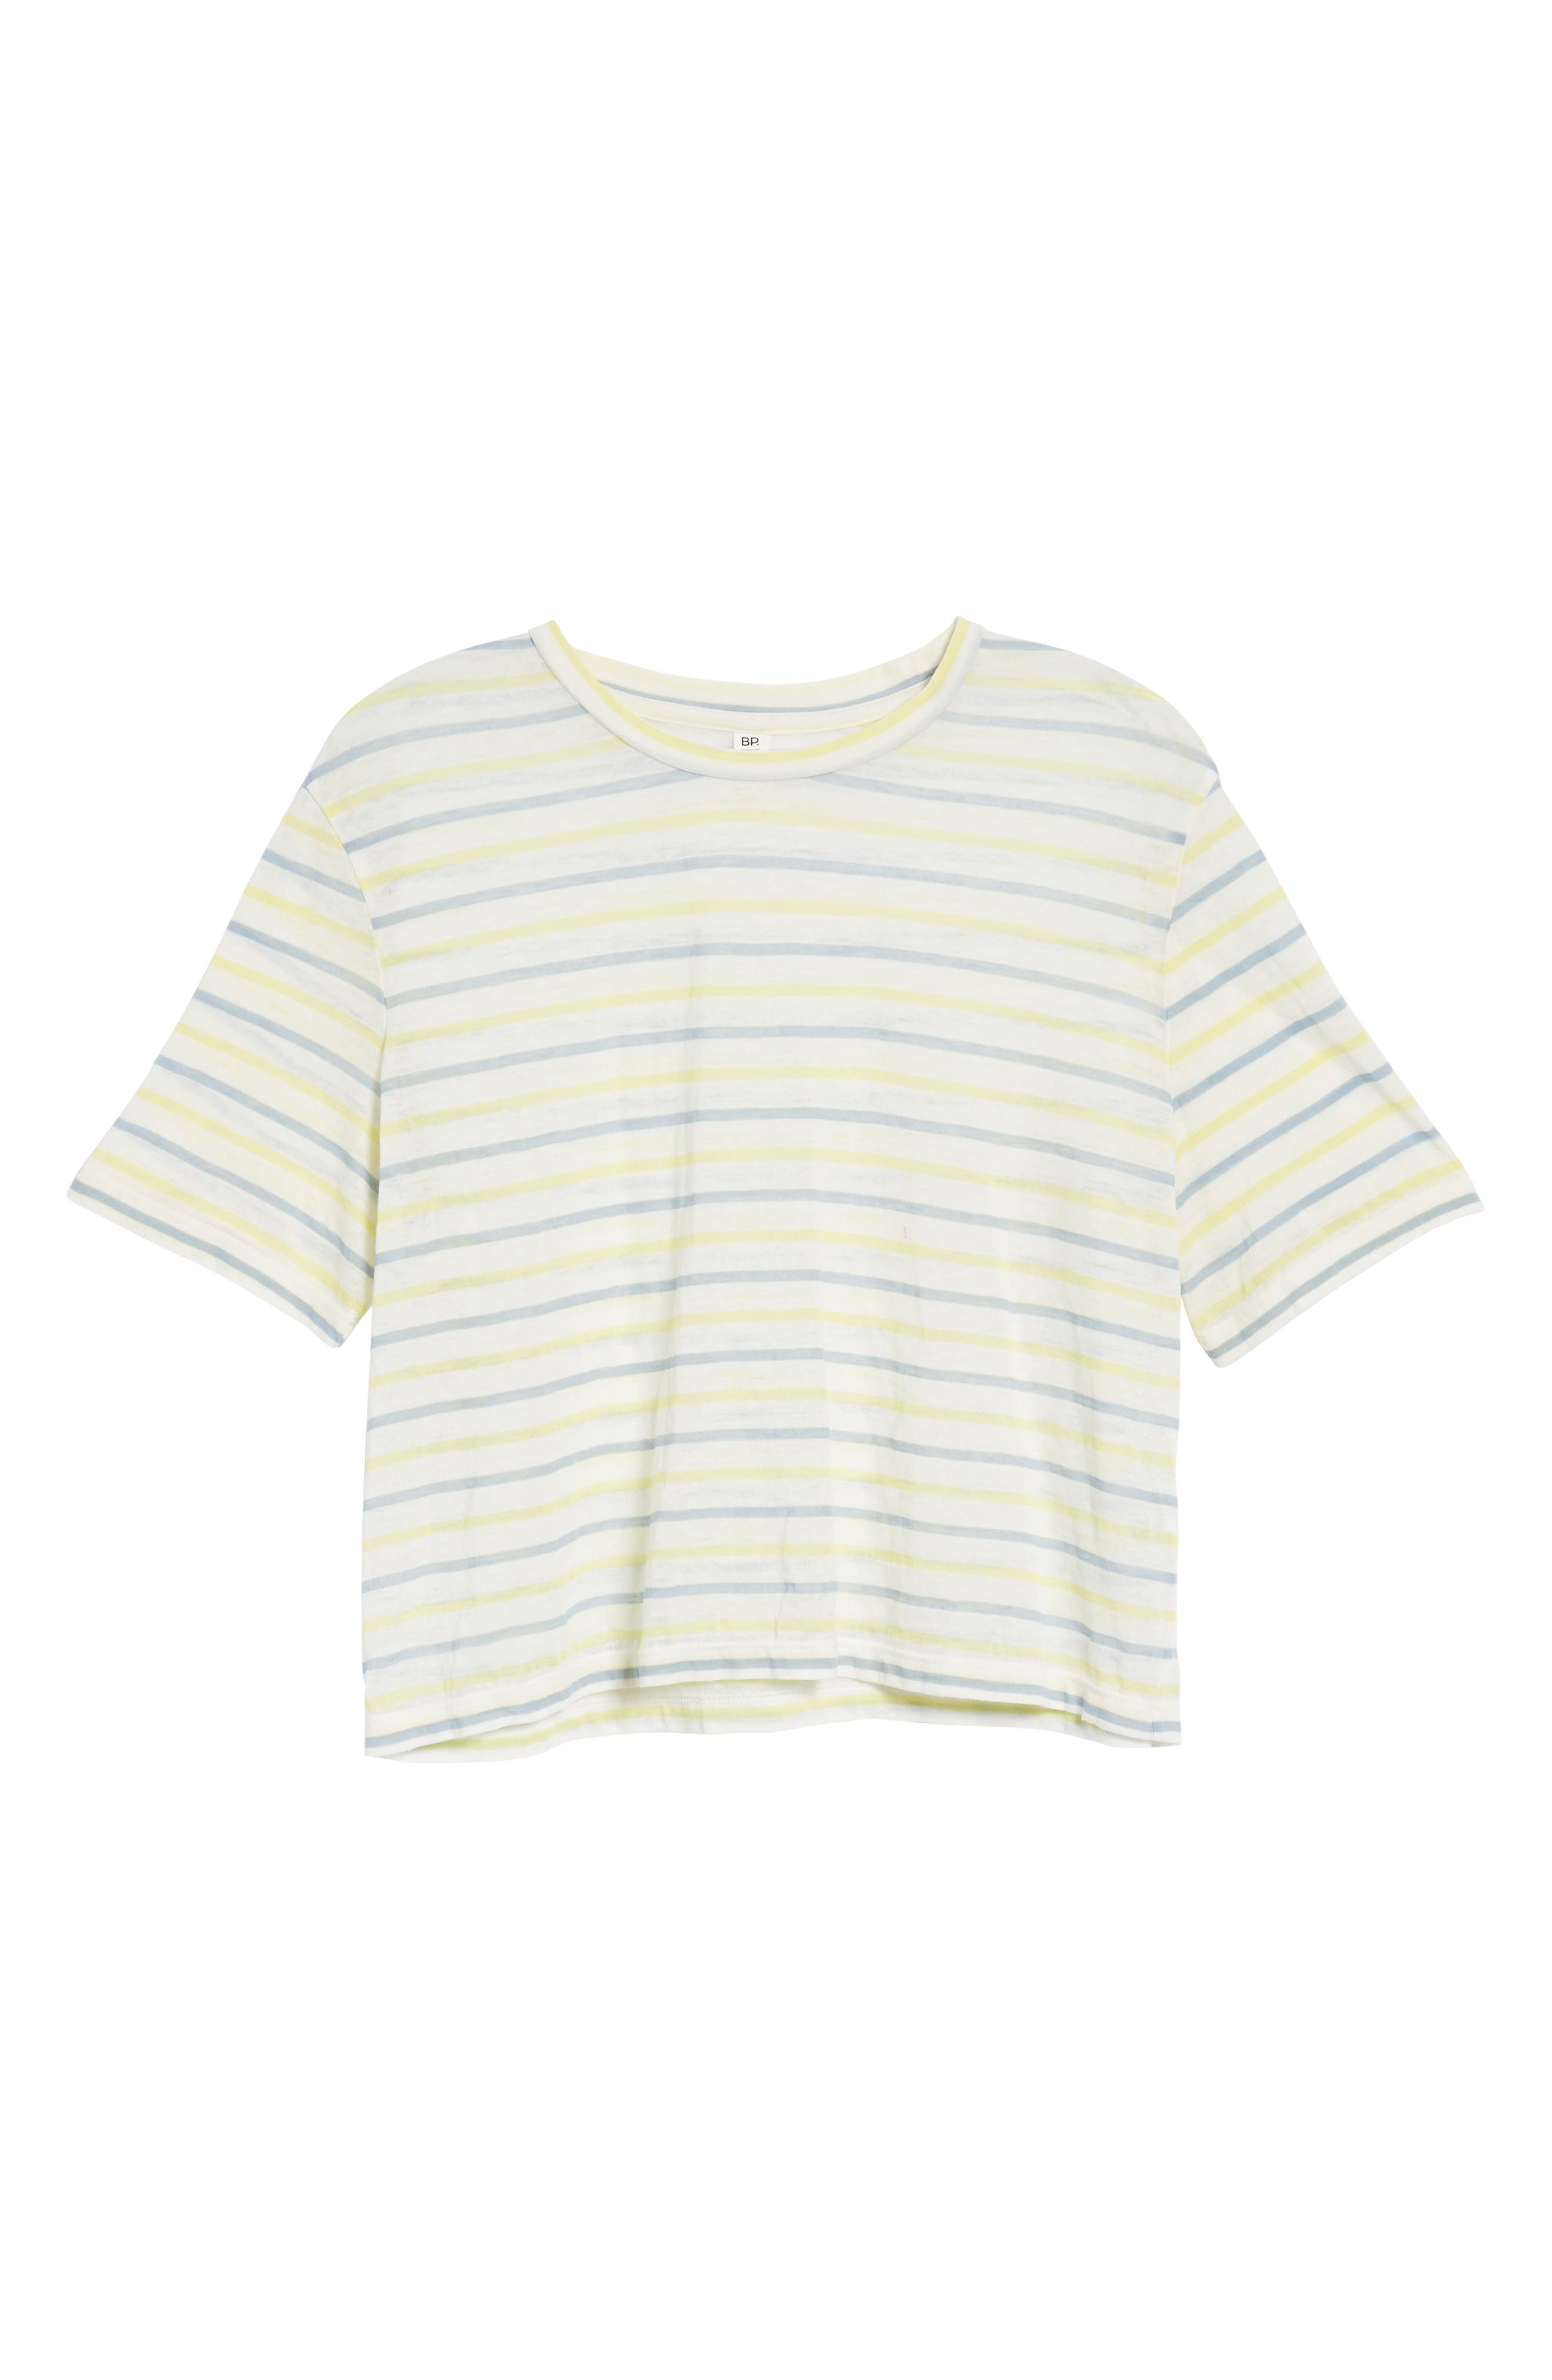 Stripe Baby Tee,                             Alternate thumbnail 6, color,                             450